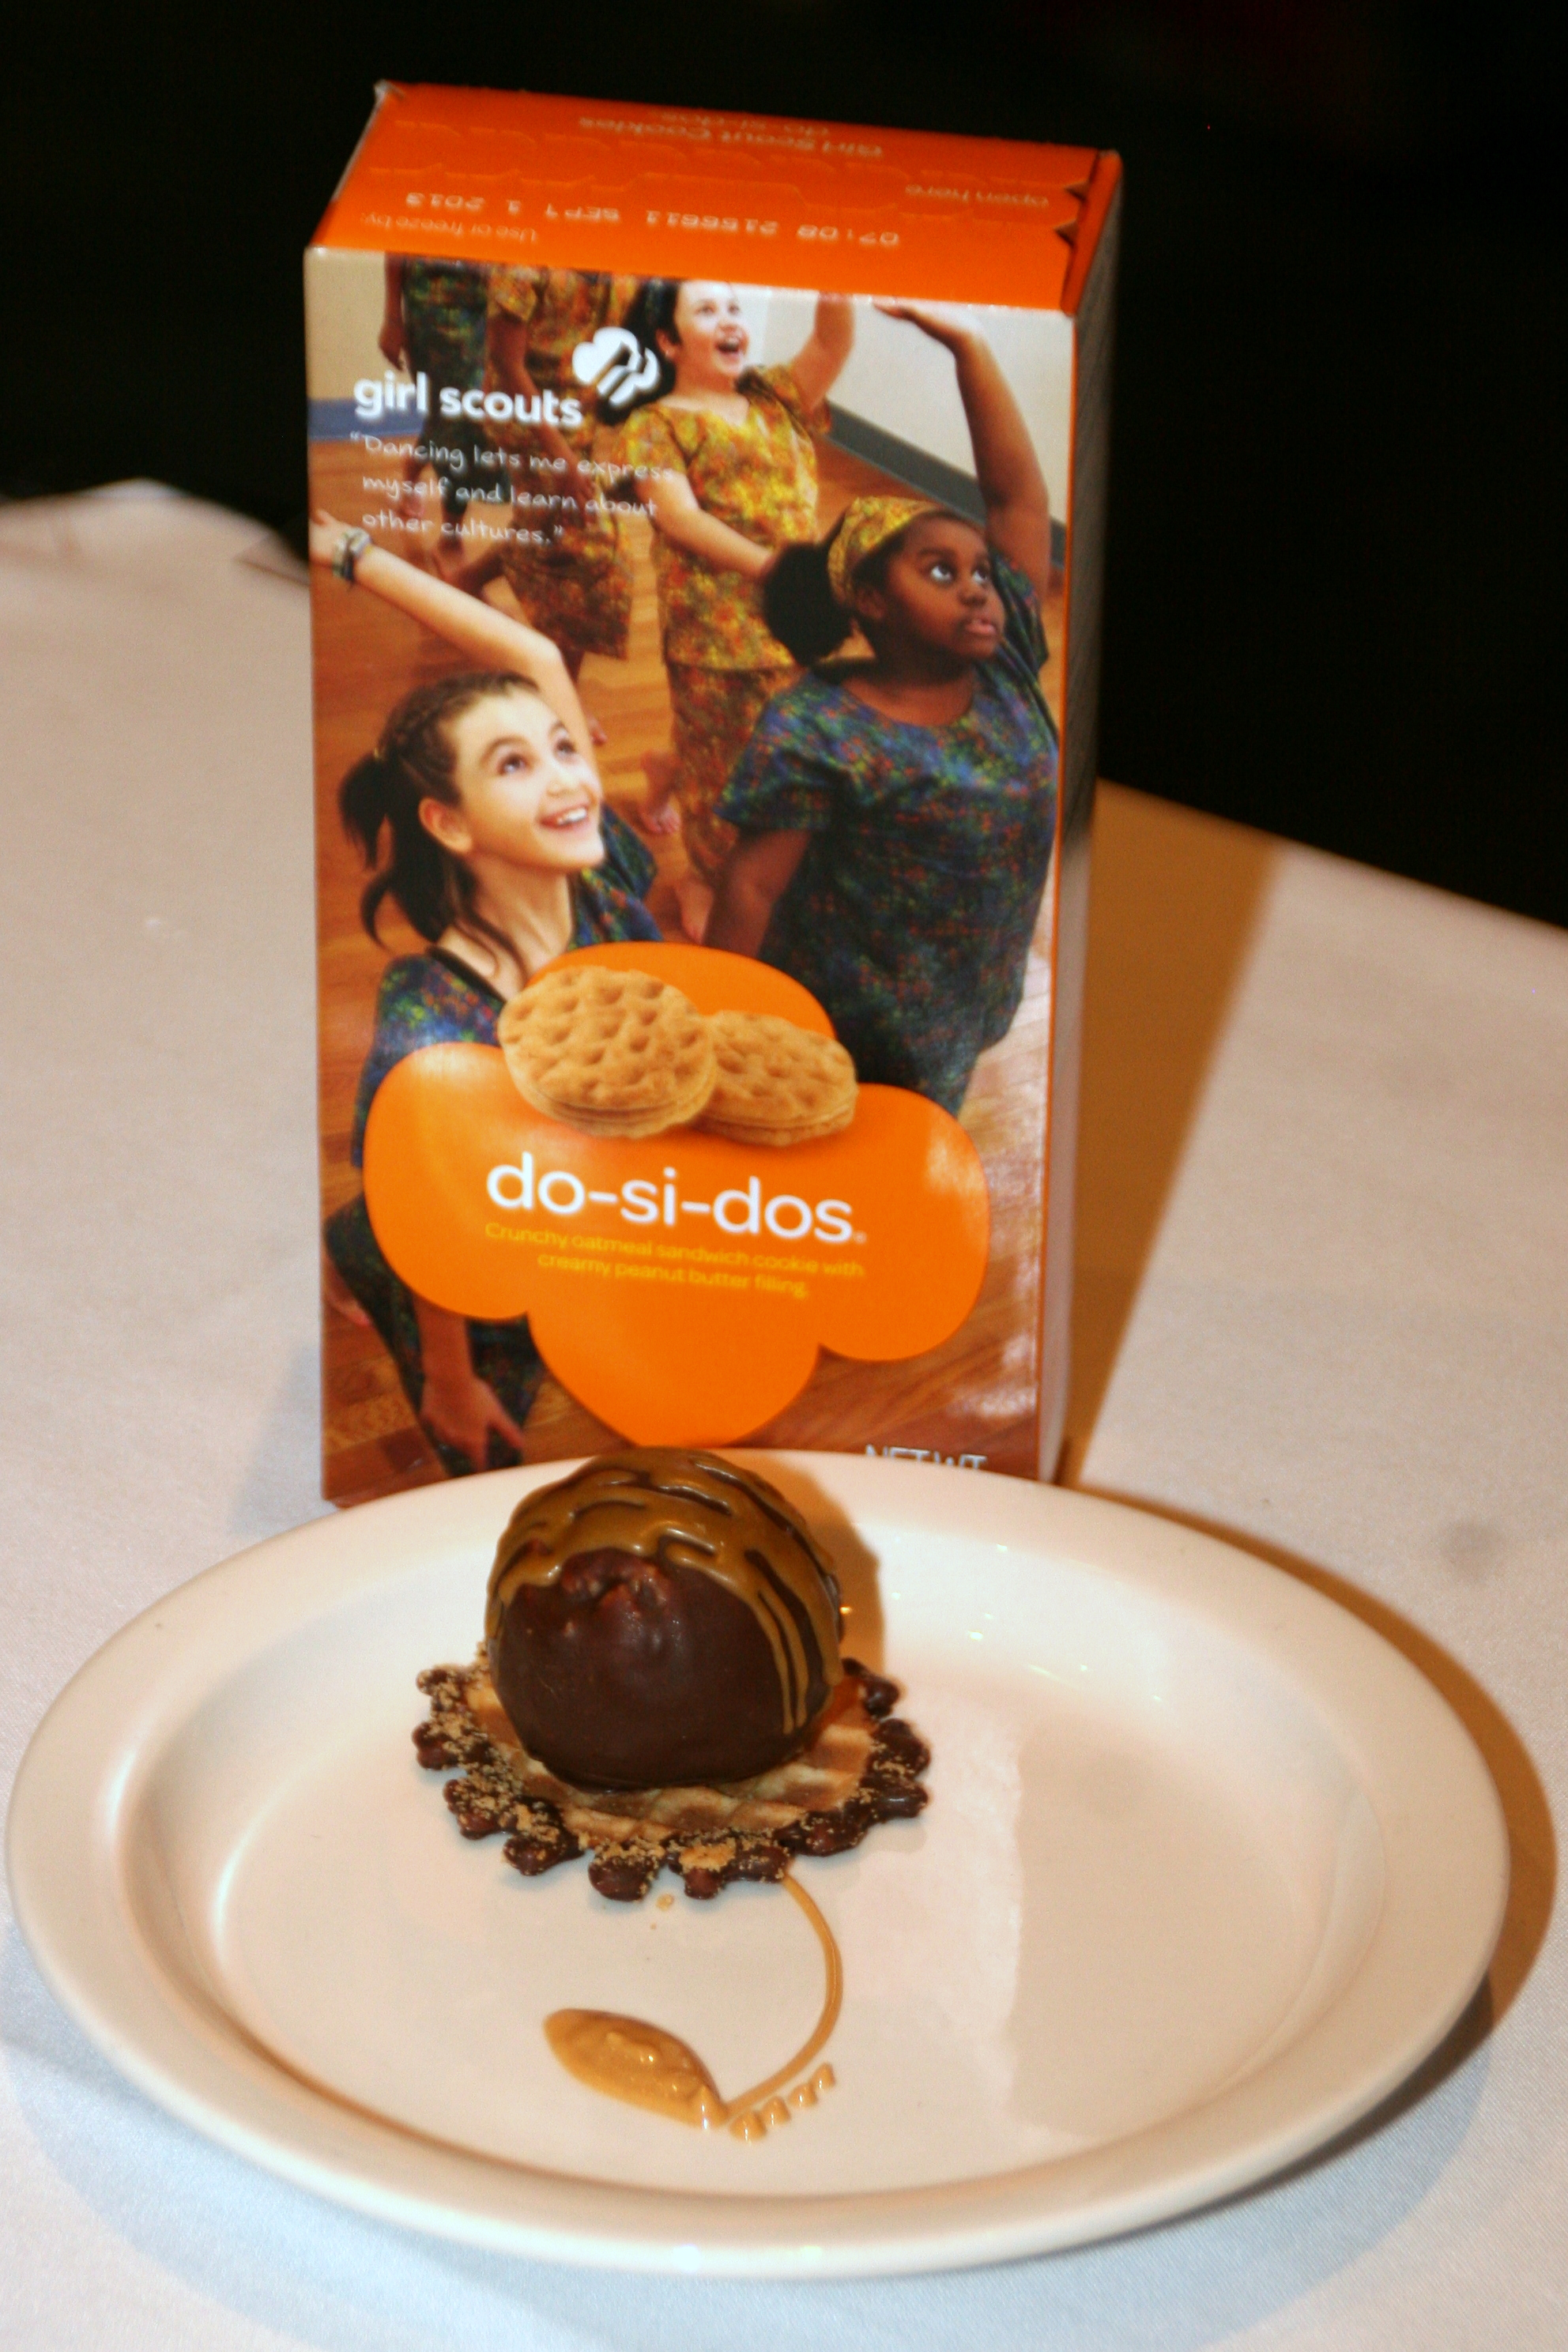 join me at the girl scouts fundraiser desserts first feb